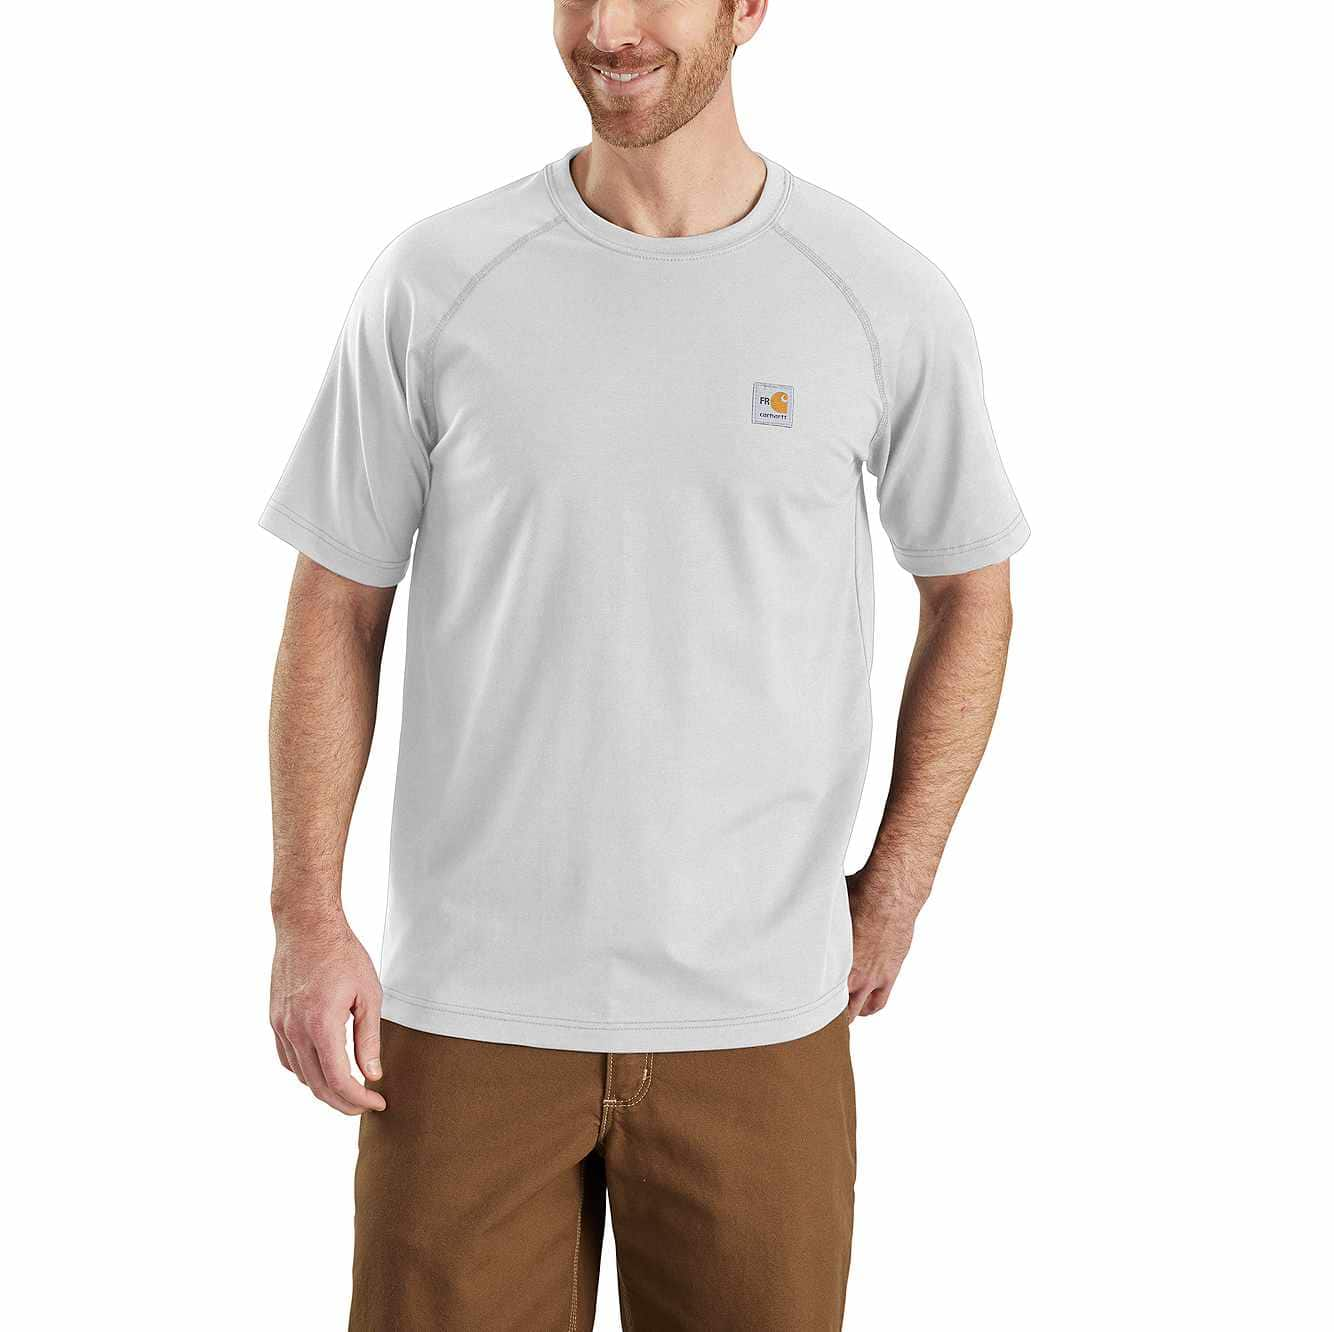 Picture of Flame-Resistant Carhartt Force® Cotton Short-Sleeve T-Shirt in Light Gray